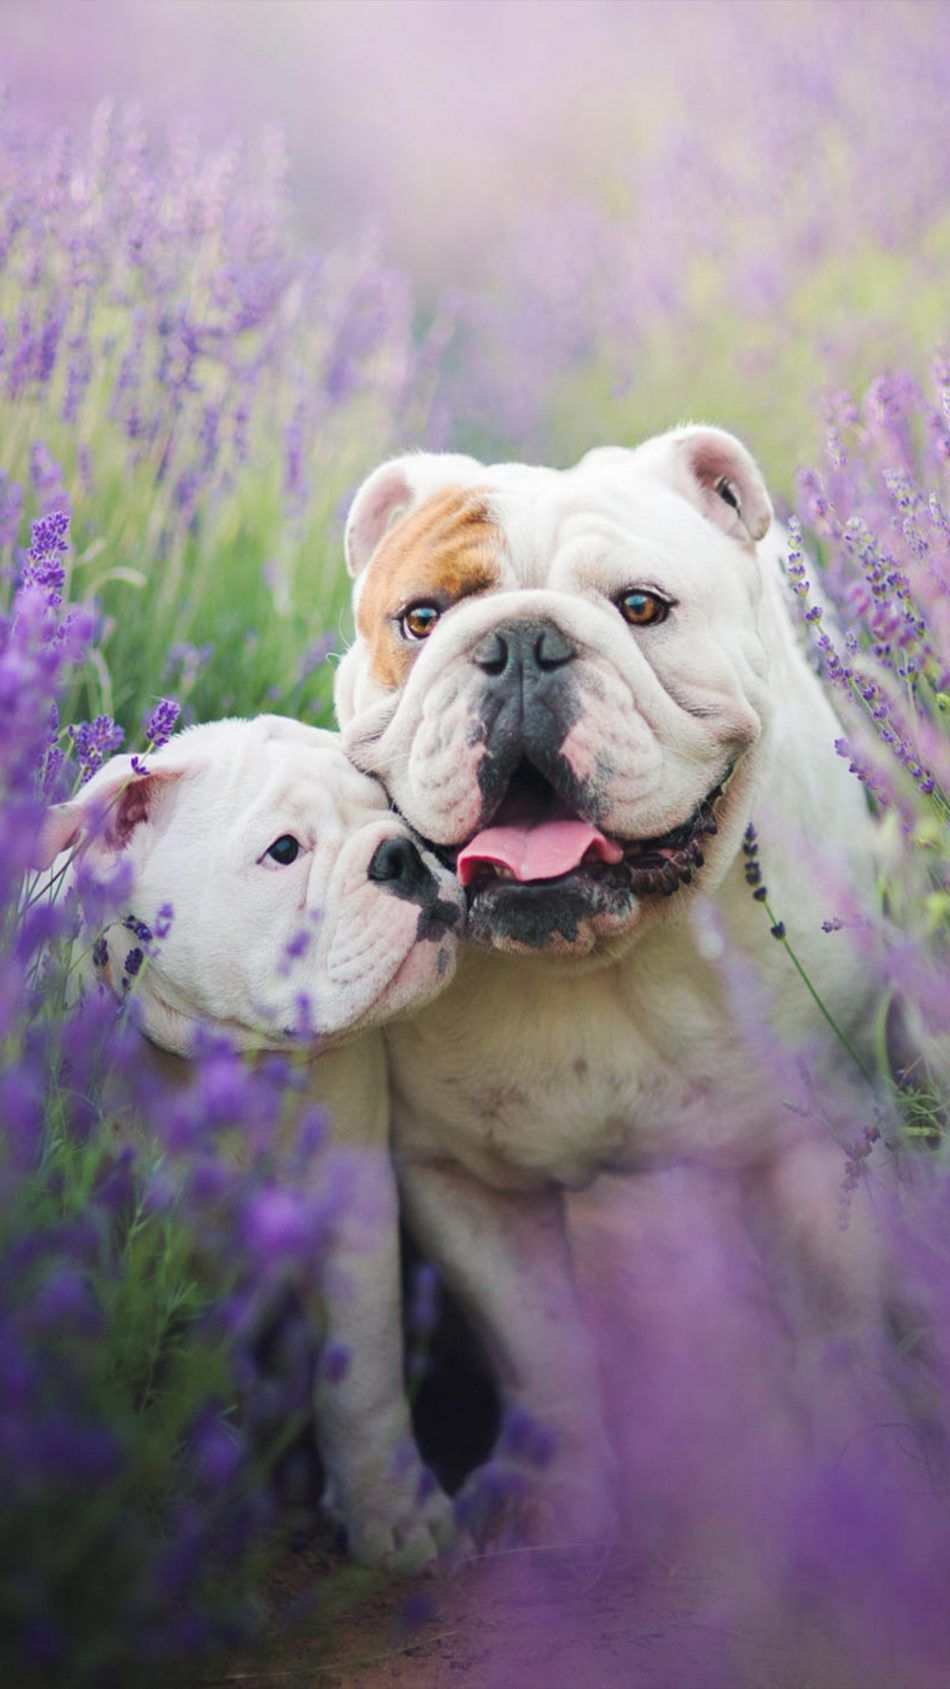 Bulldog With Puppy Puppies Bulldog Wallpaper Dogs